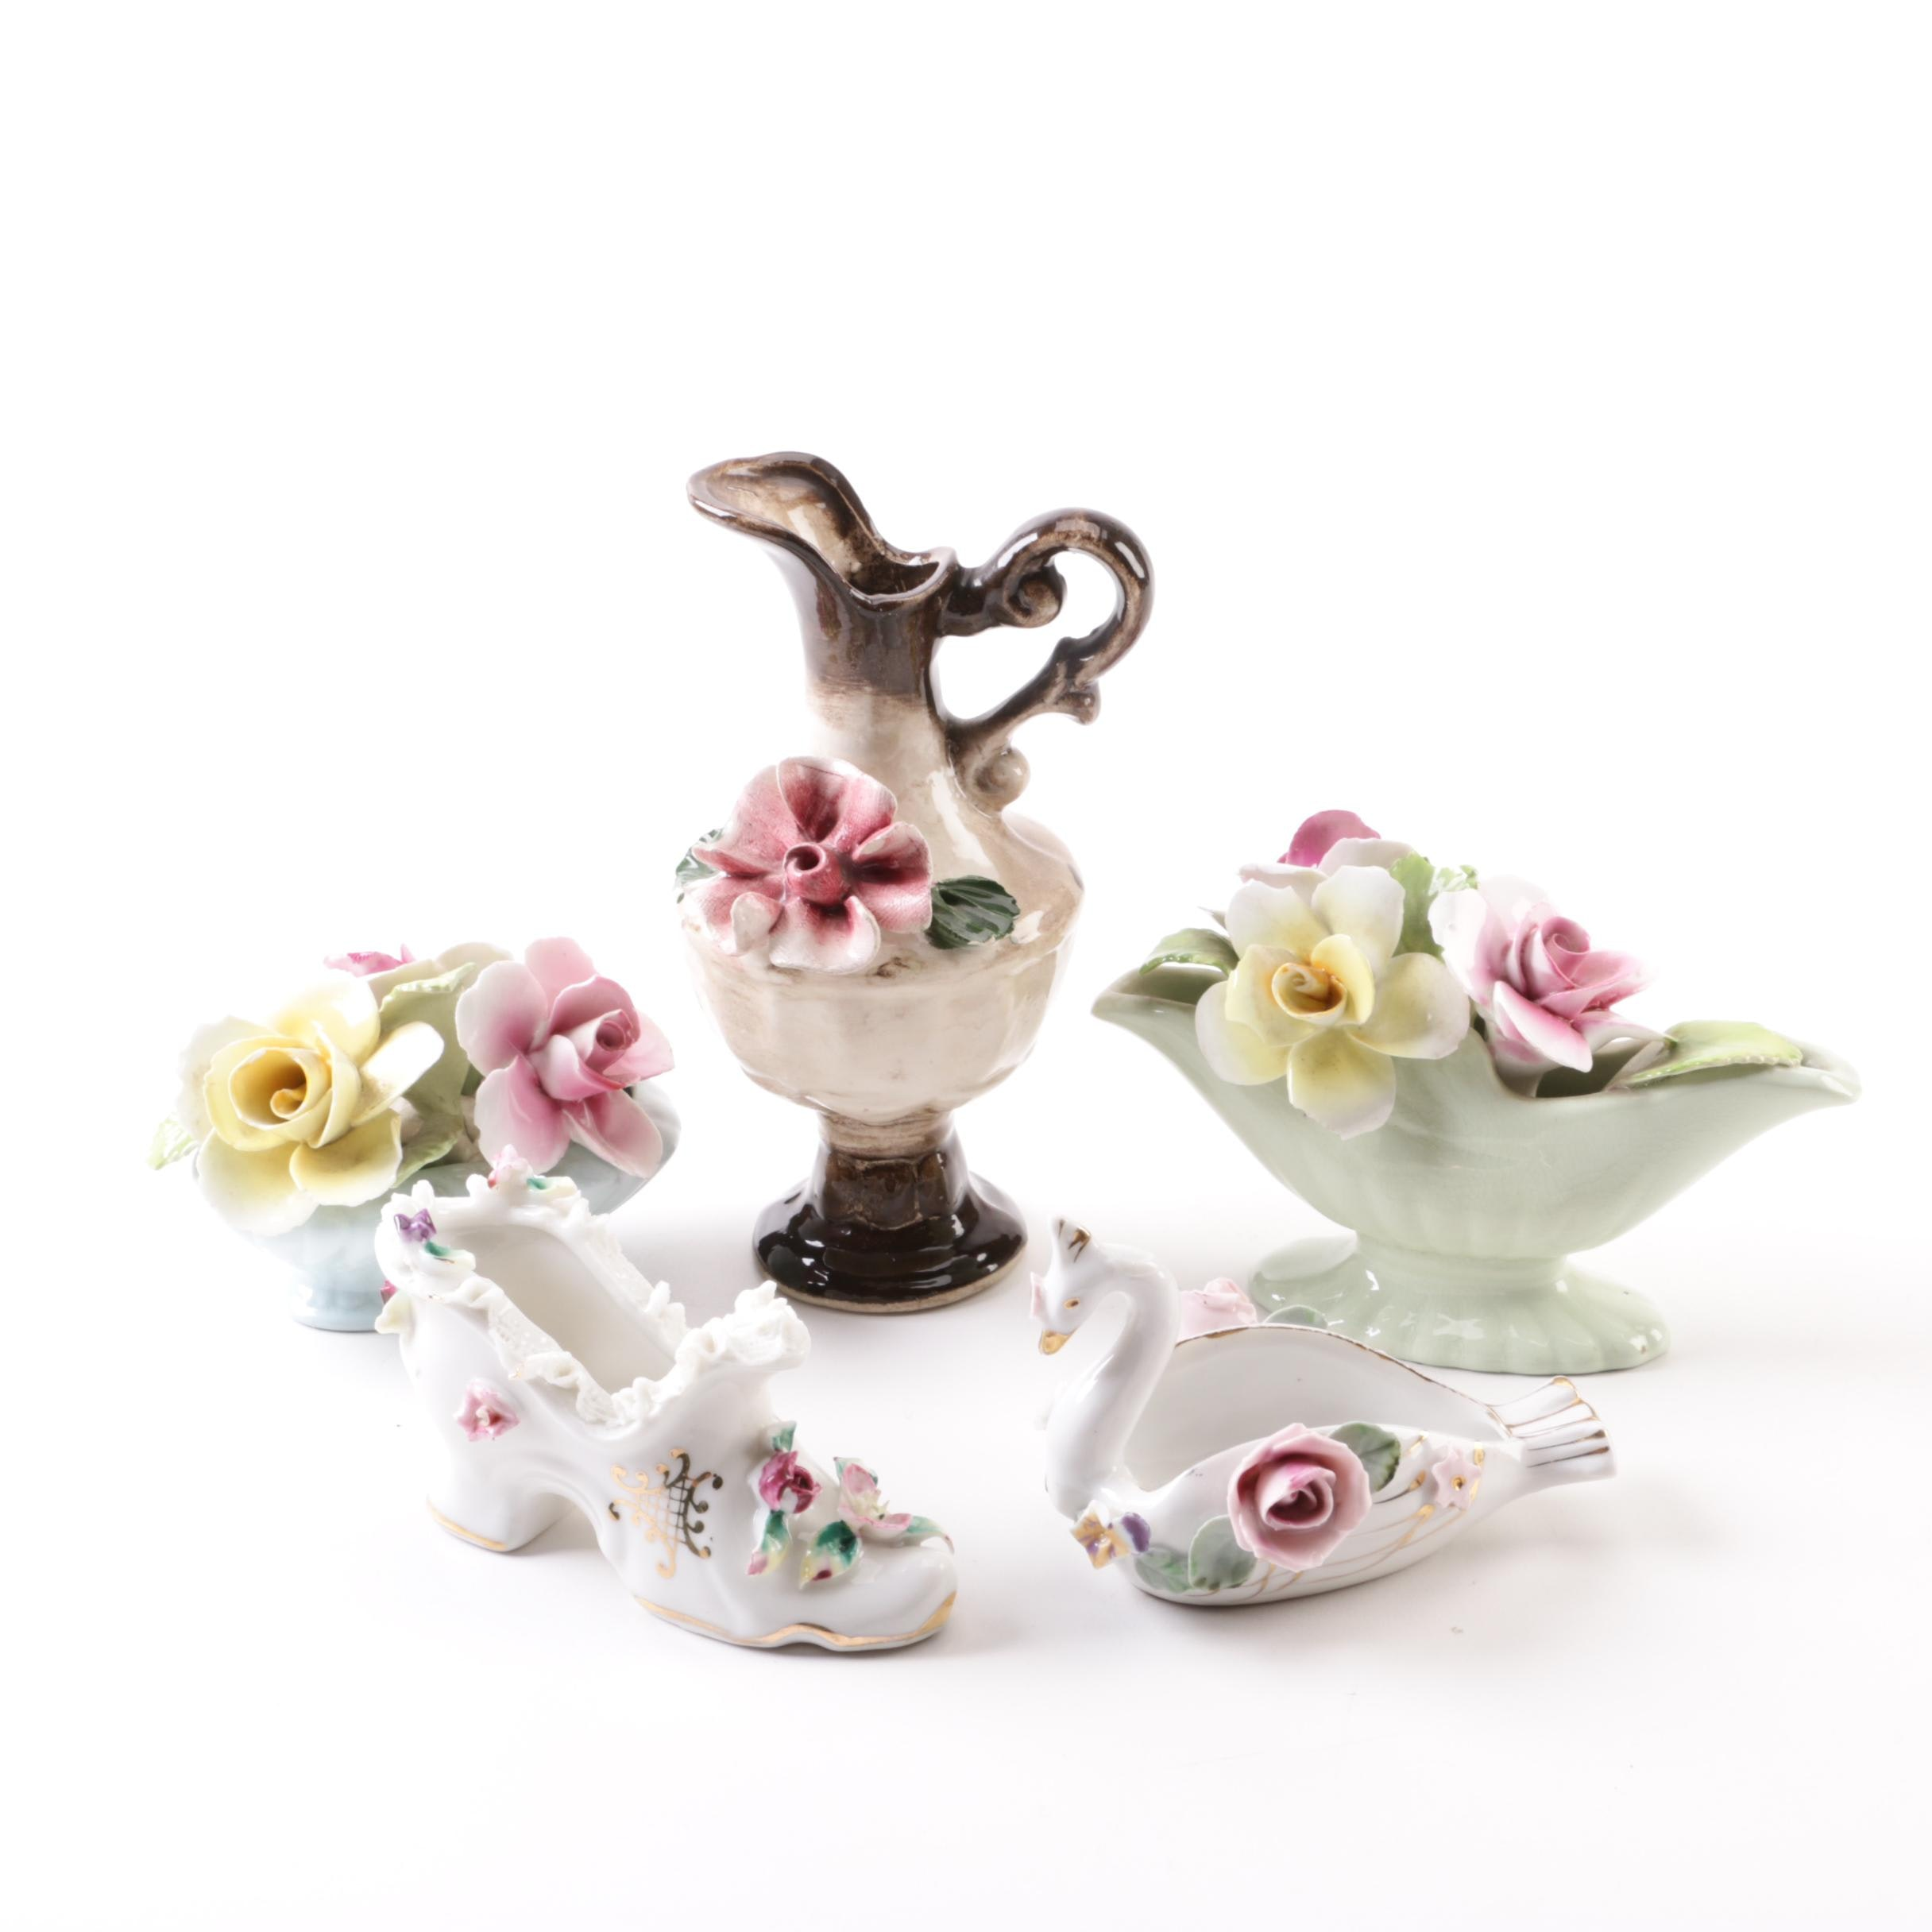 Bone China and Ceramic Floral Figurines and Vase